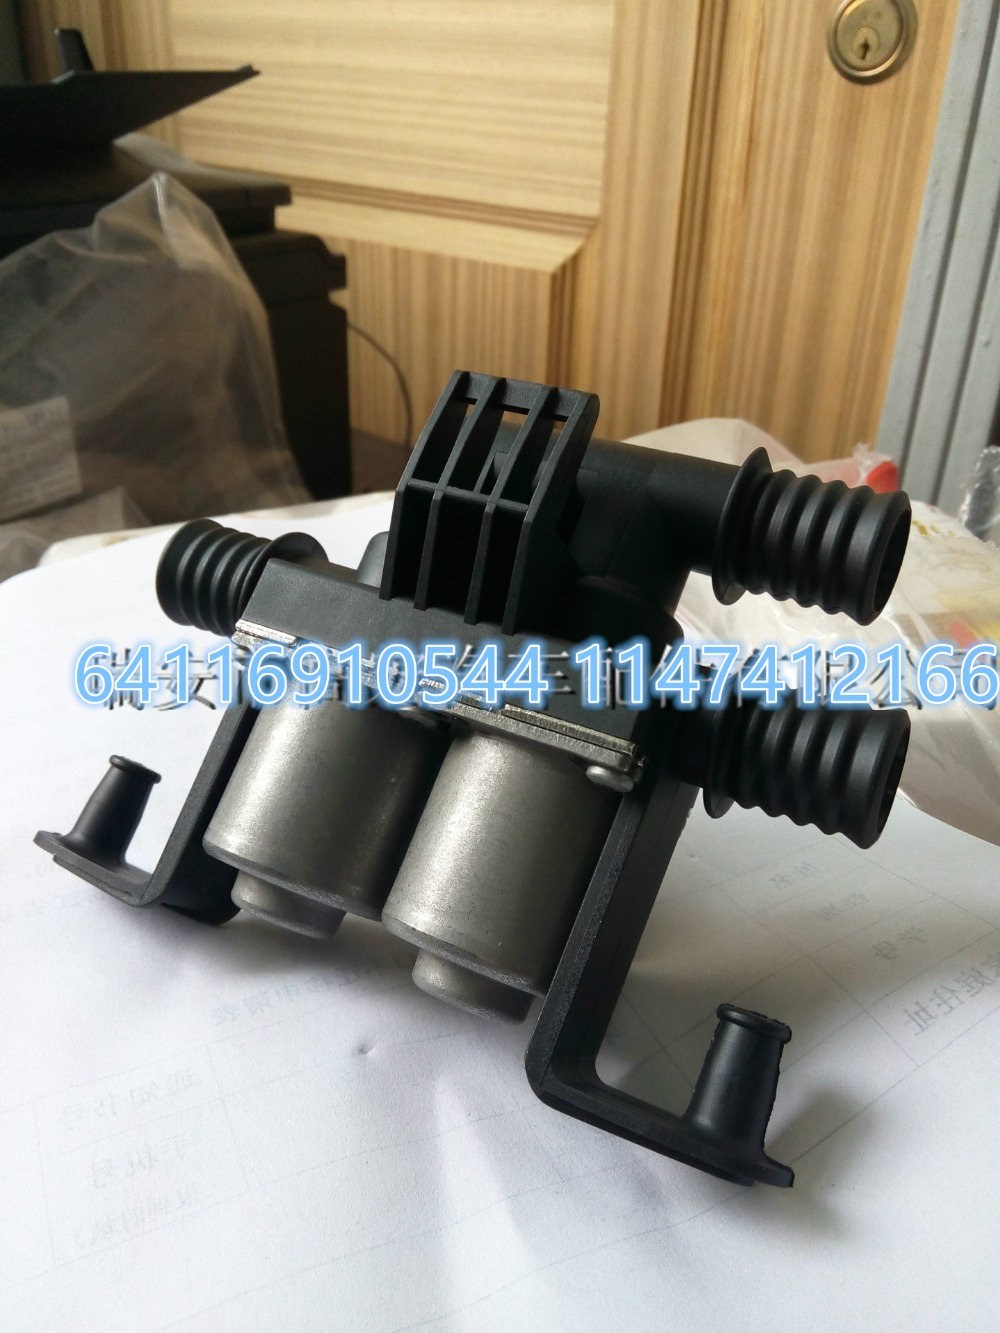 Free shipping wholesale new Heater Control Valve for BMW X5 E53 E70 F15 X6 E71 F16 4.4i 4.8i 35iX 40iX 64116910544 warm water valve for bmw e70 x5 e53 e71 x6 oem 64116910544 1147412166 heater control valve